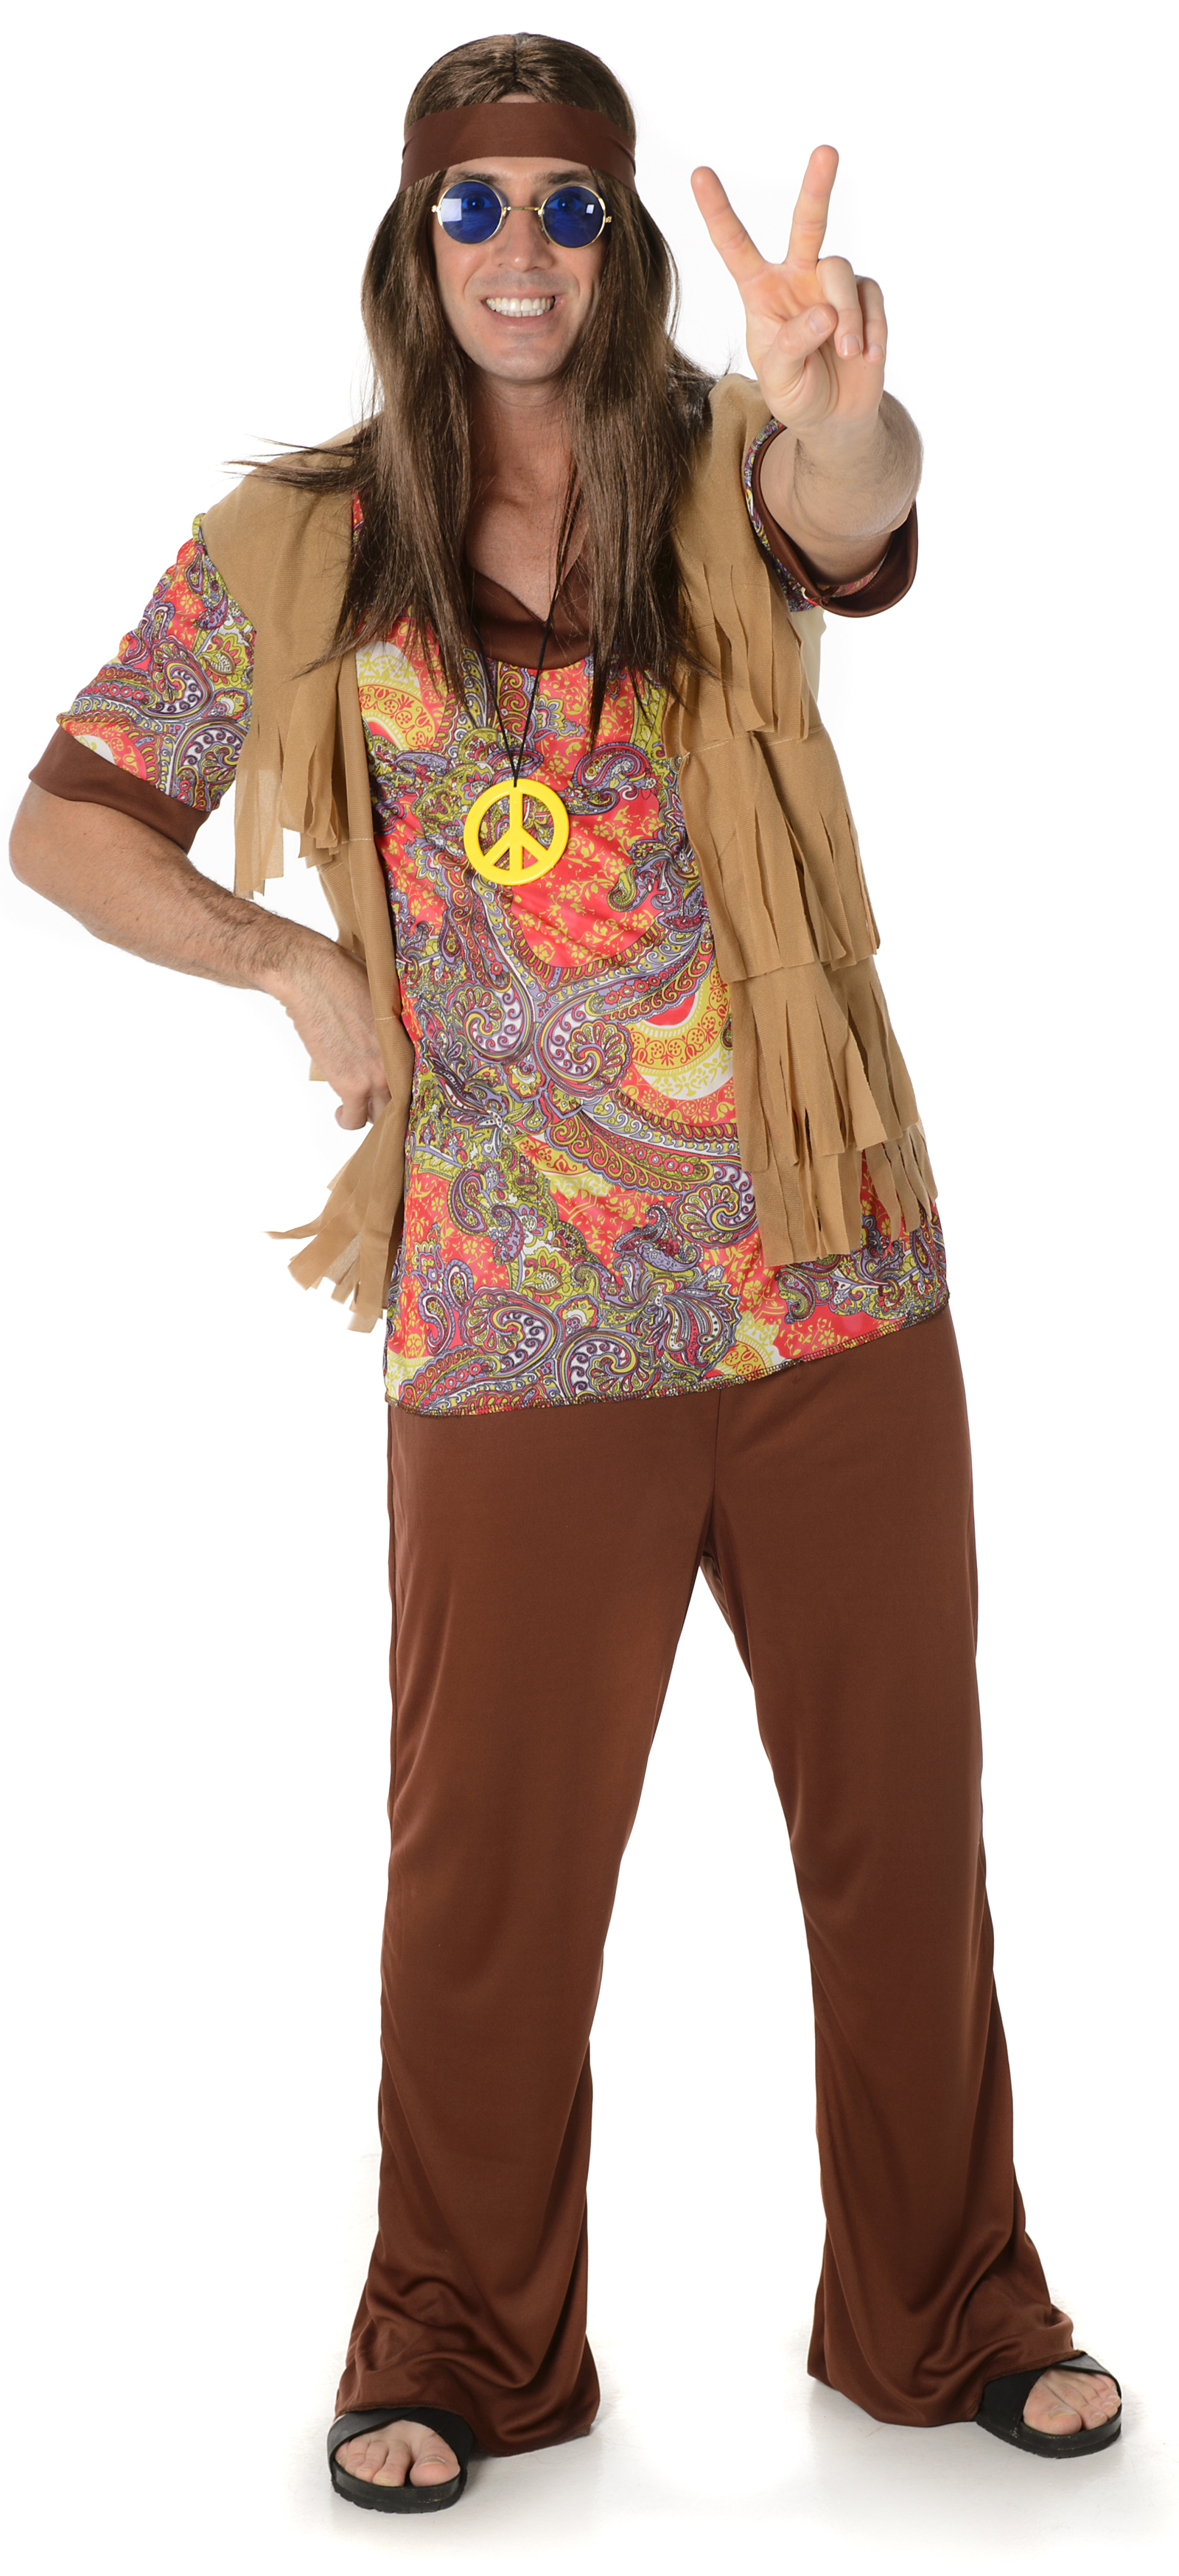 Groovy Hippie Man Mens Costume  sc 1 st  Mega Fancy Dress & Groovy Hippie Man Mens Costume | 60s Costumes | Mega Fancy Dress